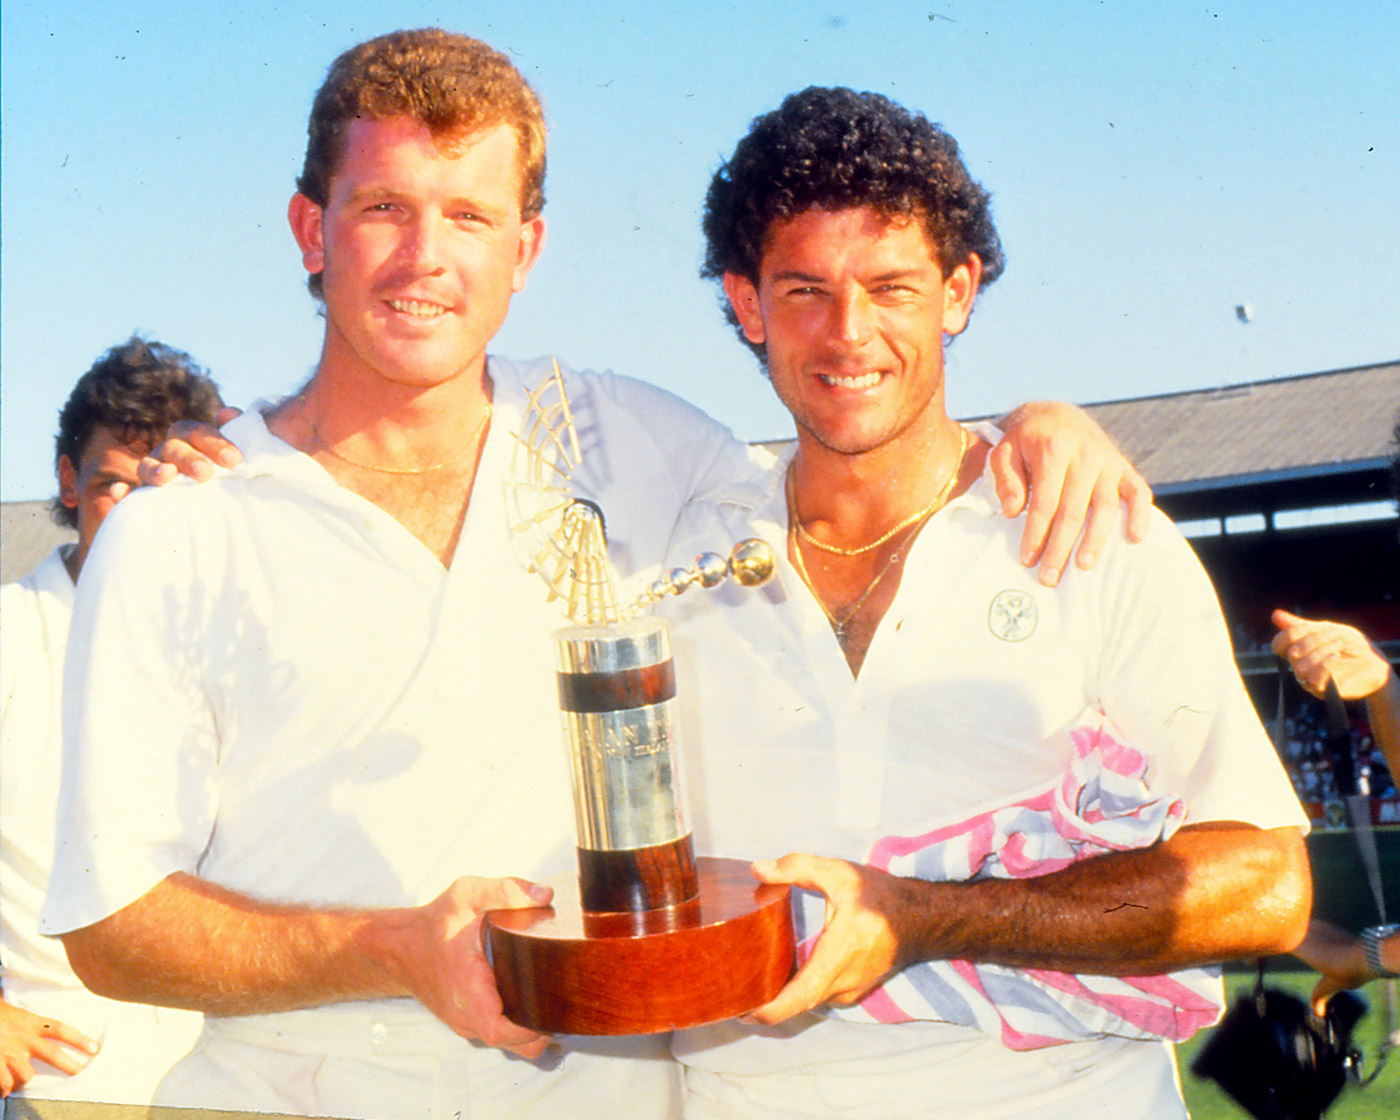 Craig McDermott and Mike Whitney hold the Trans-Tasman Trophy after the draw against New Zealand in Melbourne in 1987